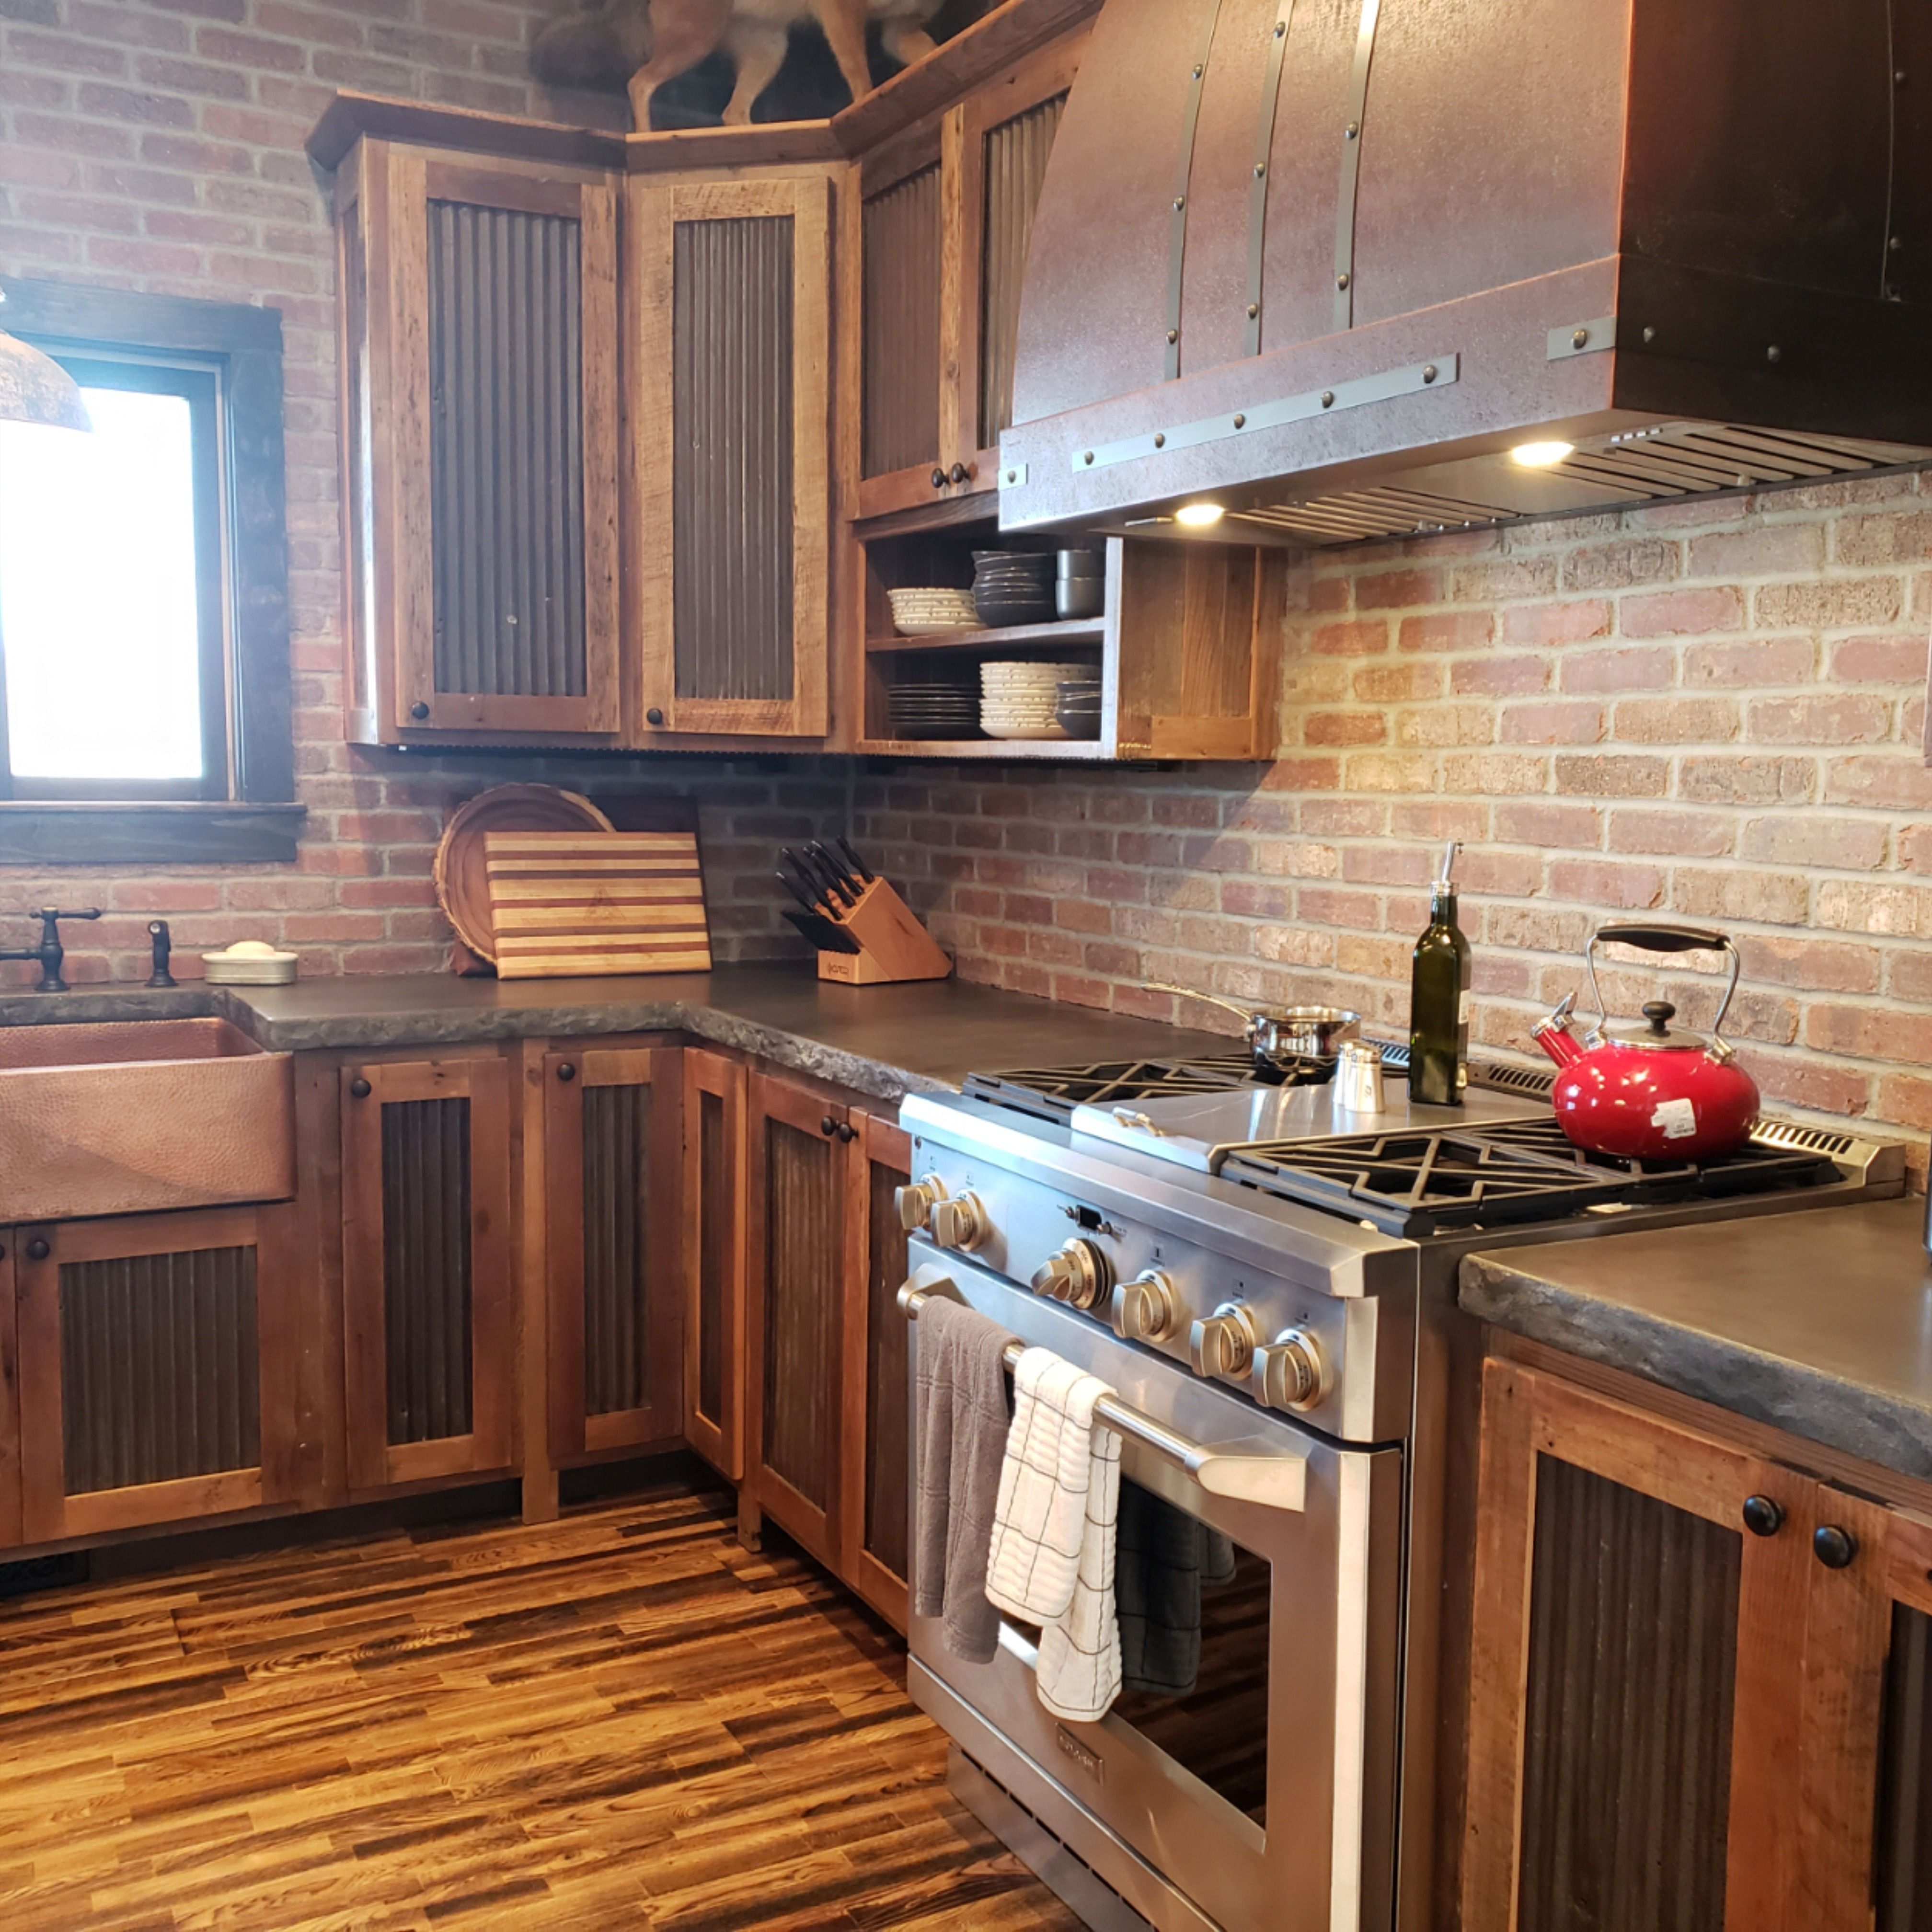 kitchen of your dreams ours too check out the live edge on best farmhouse kitchen decor ideas and remodel create your dreams id=14626